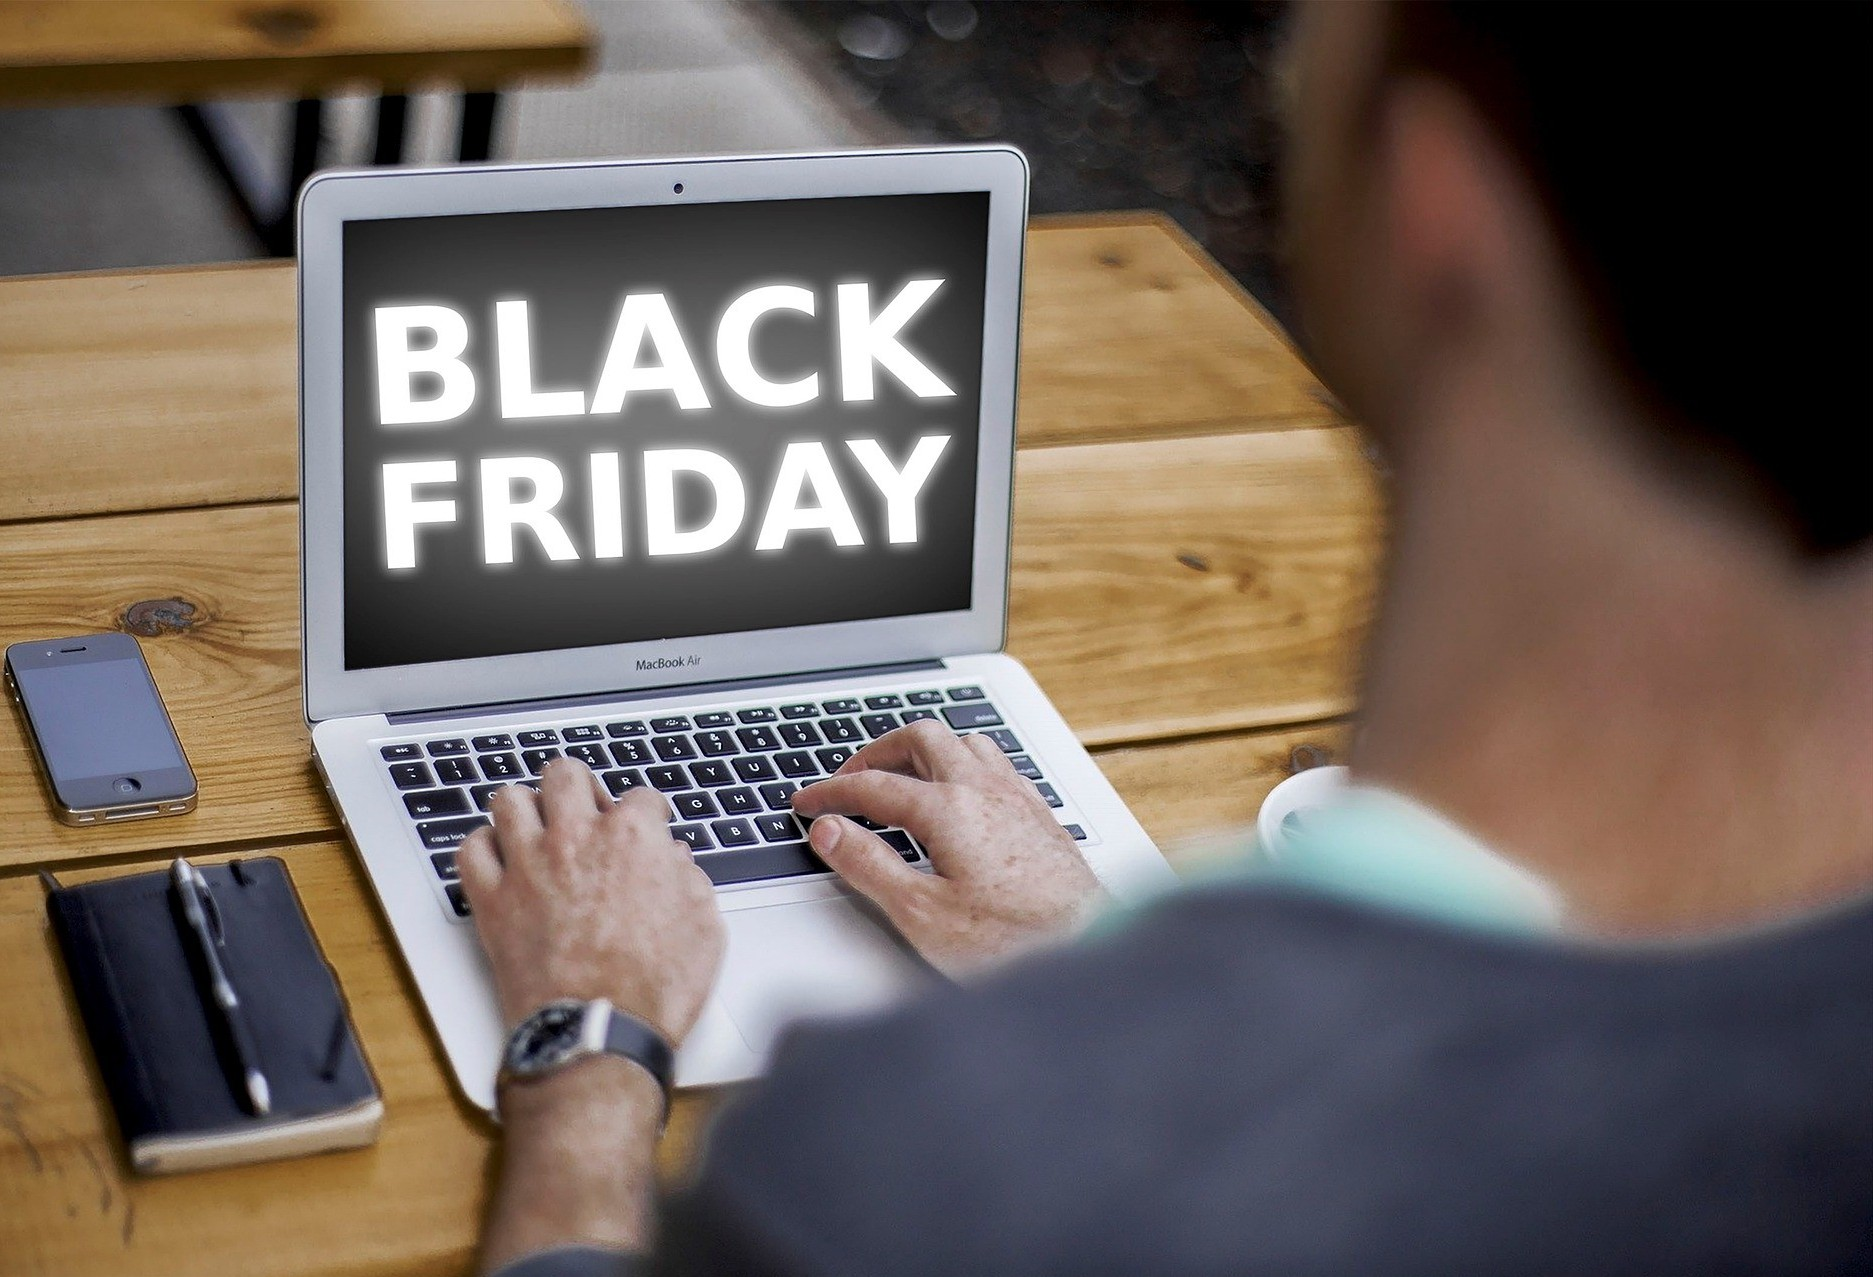 Black Friday se aproxima e especialista dá dicas para preparar o seu e-commerce